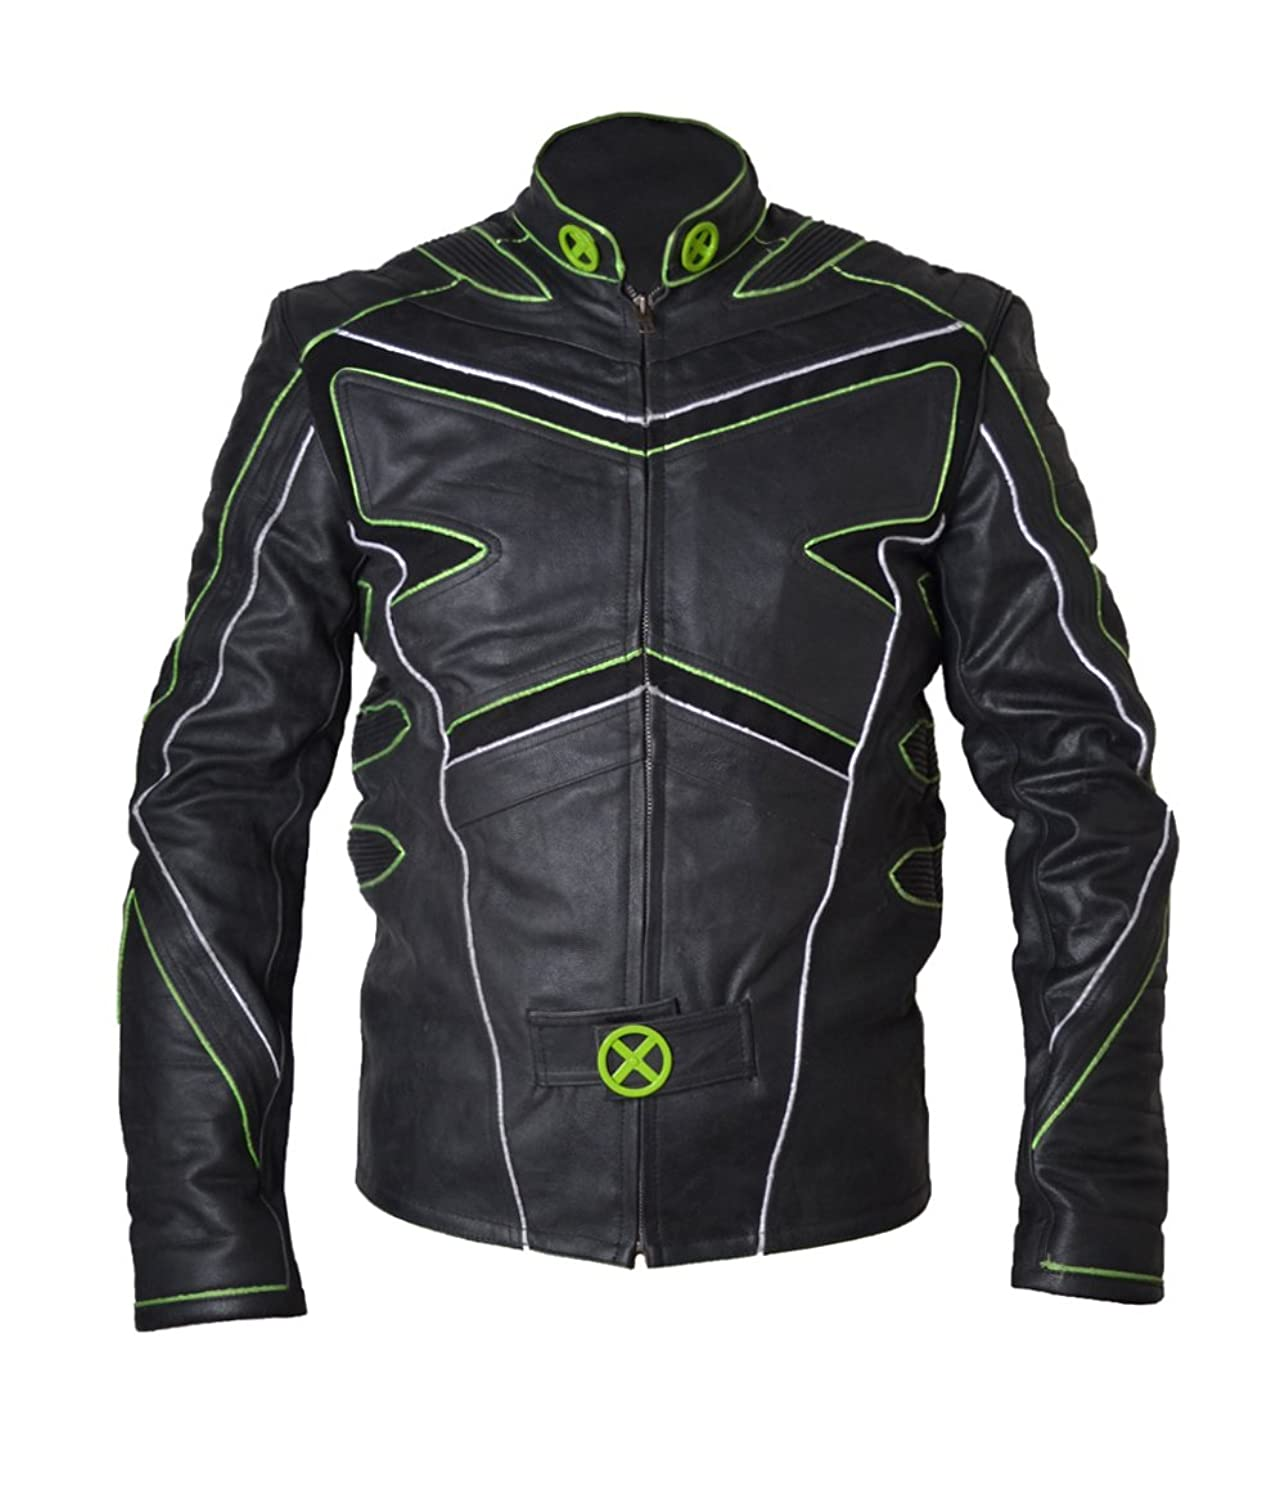 Xmen Wolverine Huge Jackman X Real Sheep Leather Jacket with Green Pipen